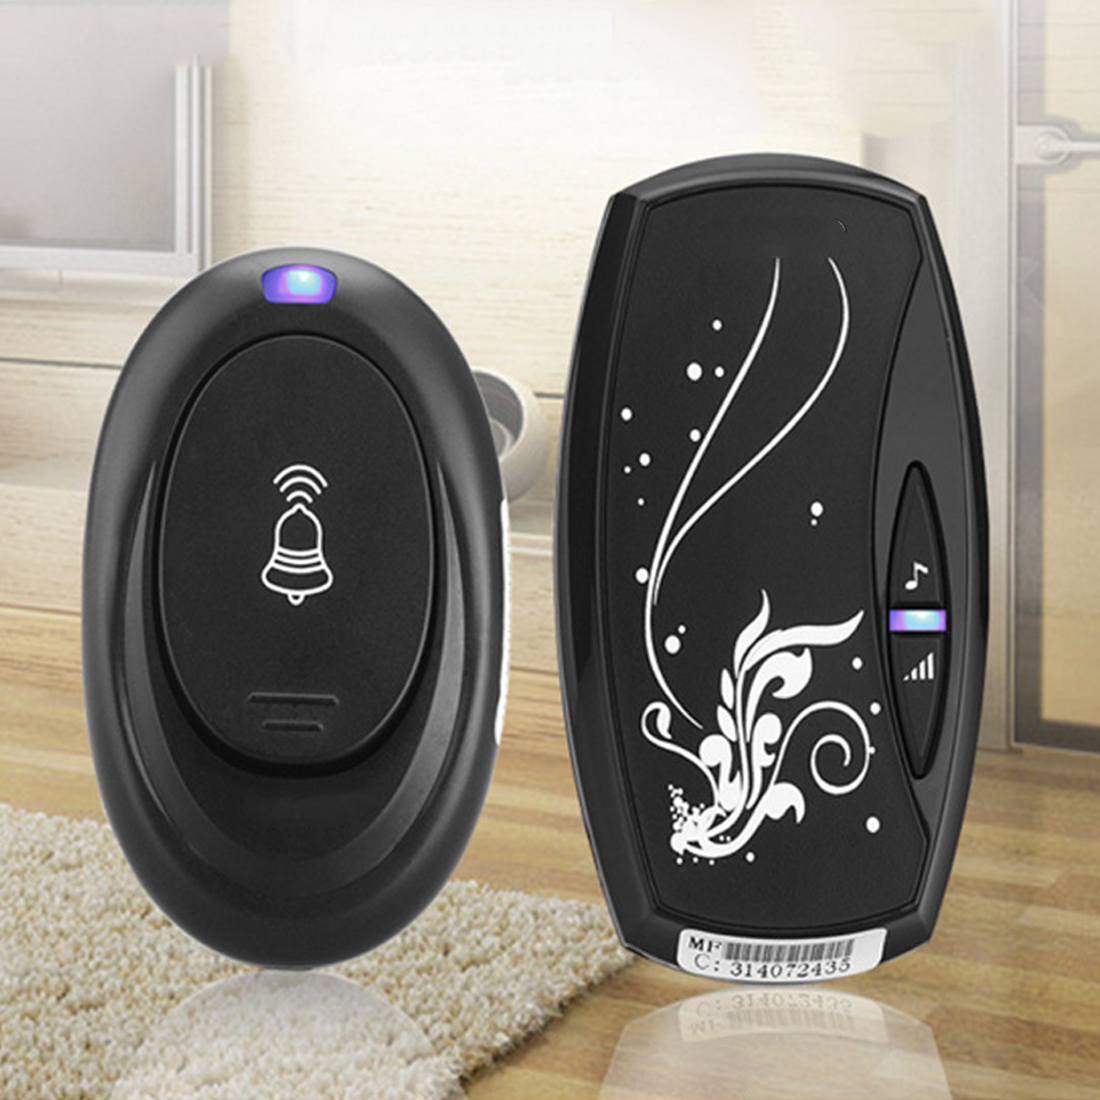 Remote Control Wireless Doorbell 1pc 36 Songs Tune Melody Door Bell 100M Range Waterproof Door Ring 220V Digital LED EU plug wireless cordless digital doorbell remote door bell chime waterproof eu us uk au plug 110 220v